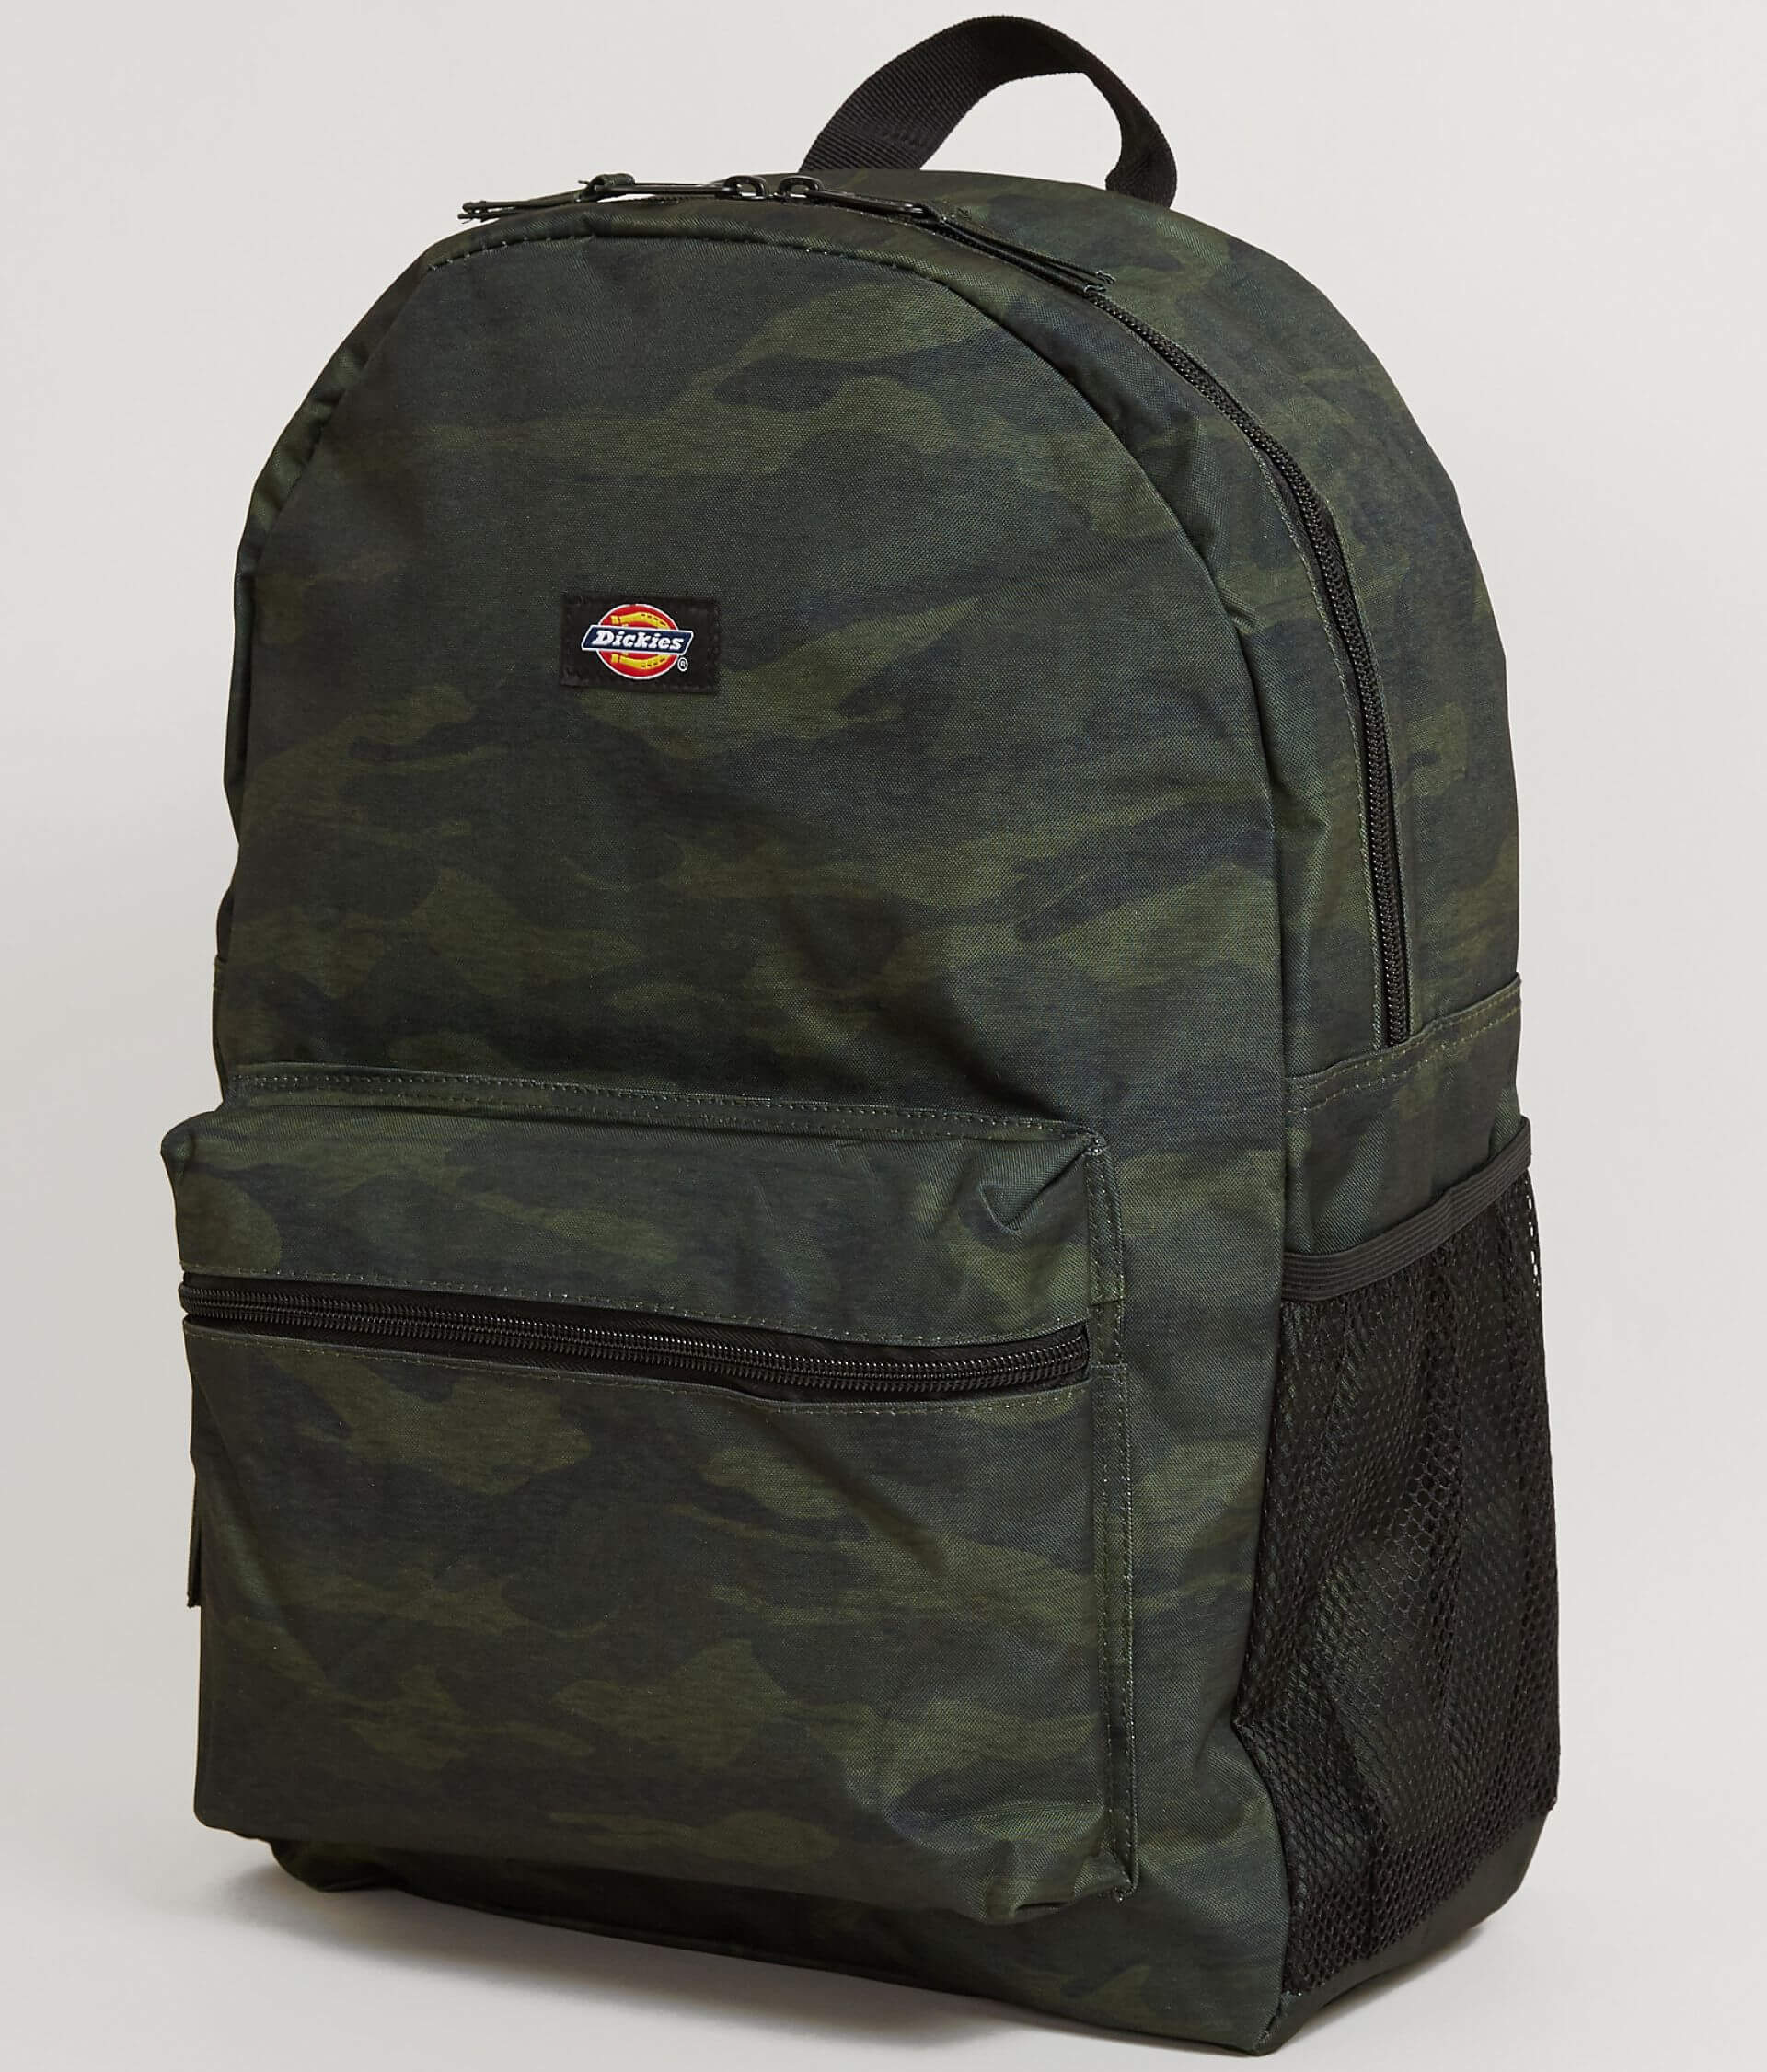 5341b9eb016 Dickies® Student Backpack - Men's Bags in Heather Camo | Buckle